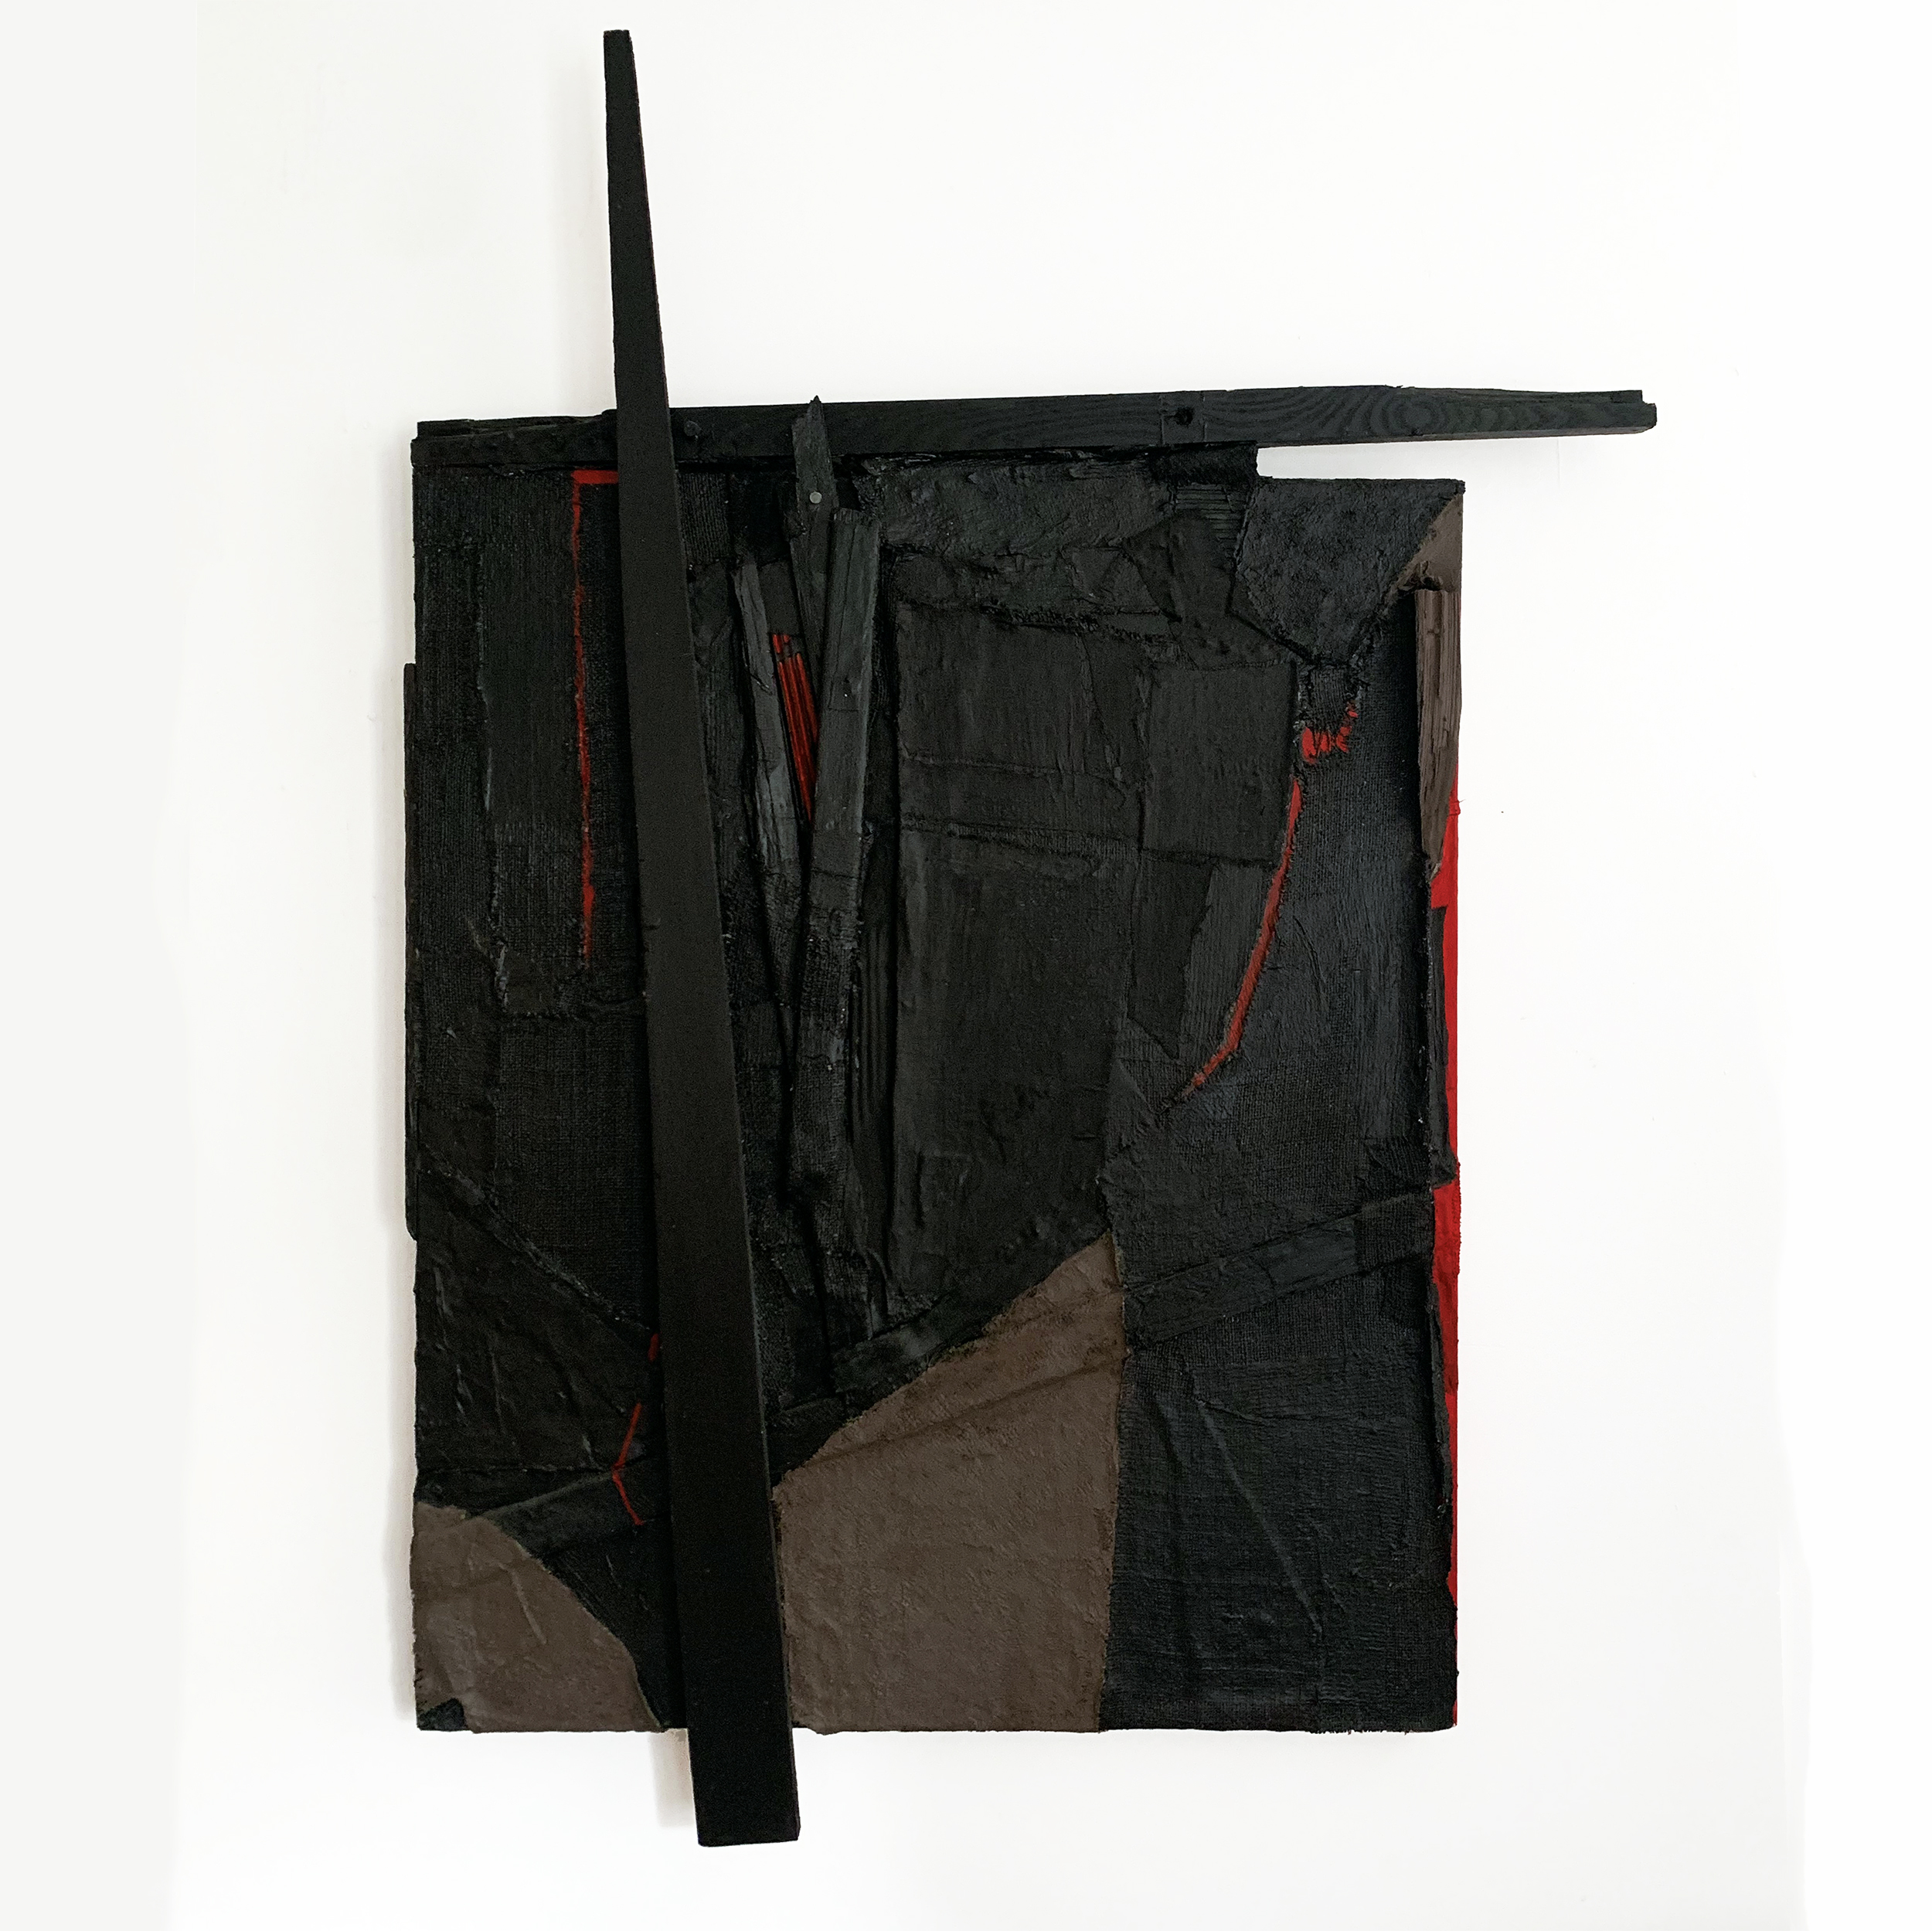 "Untitled, 2012, acrylic, fabric, paper, wood and cardboard on canvas, 48"" x 33"""